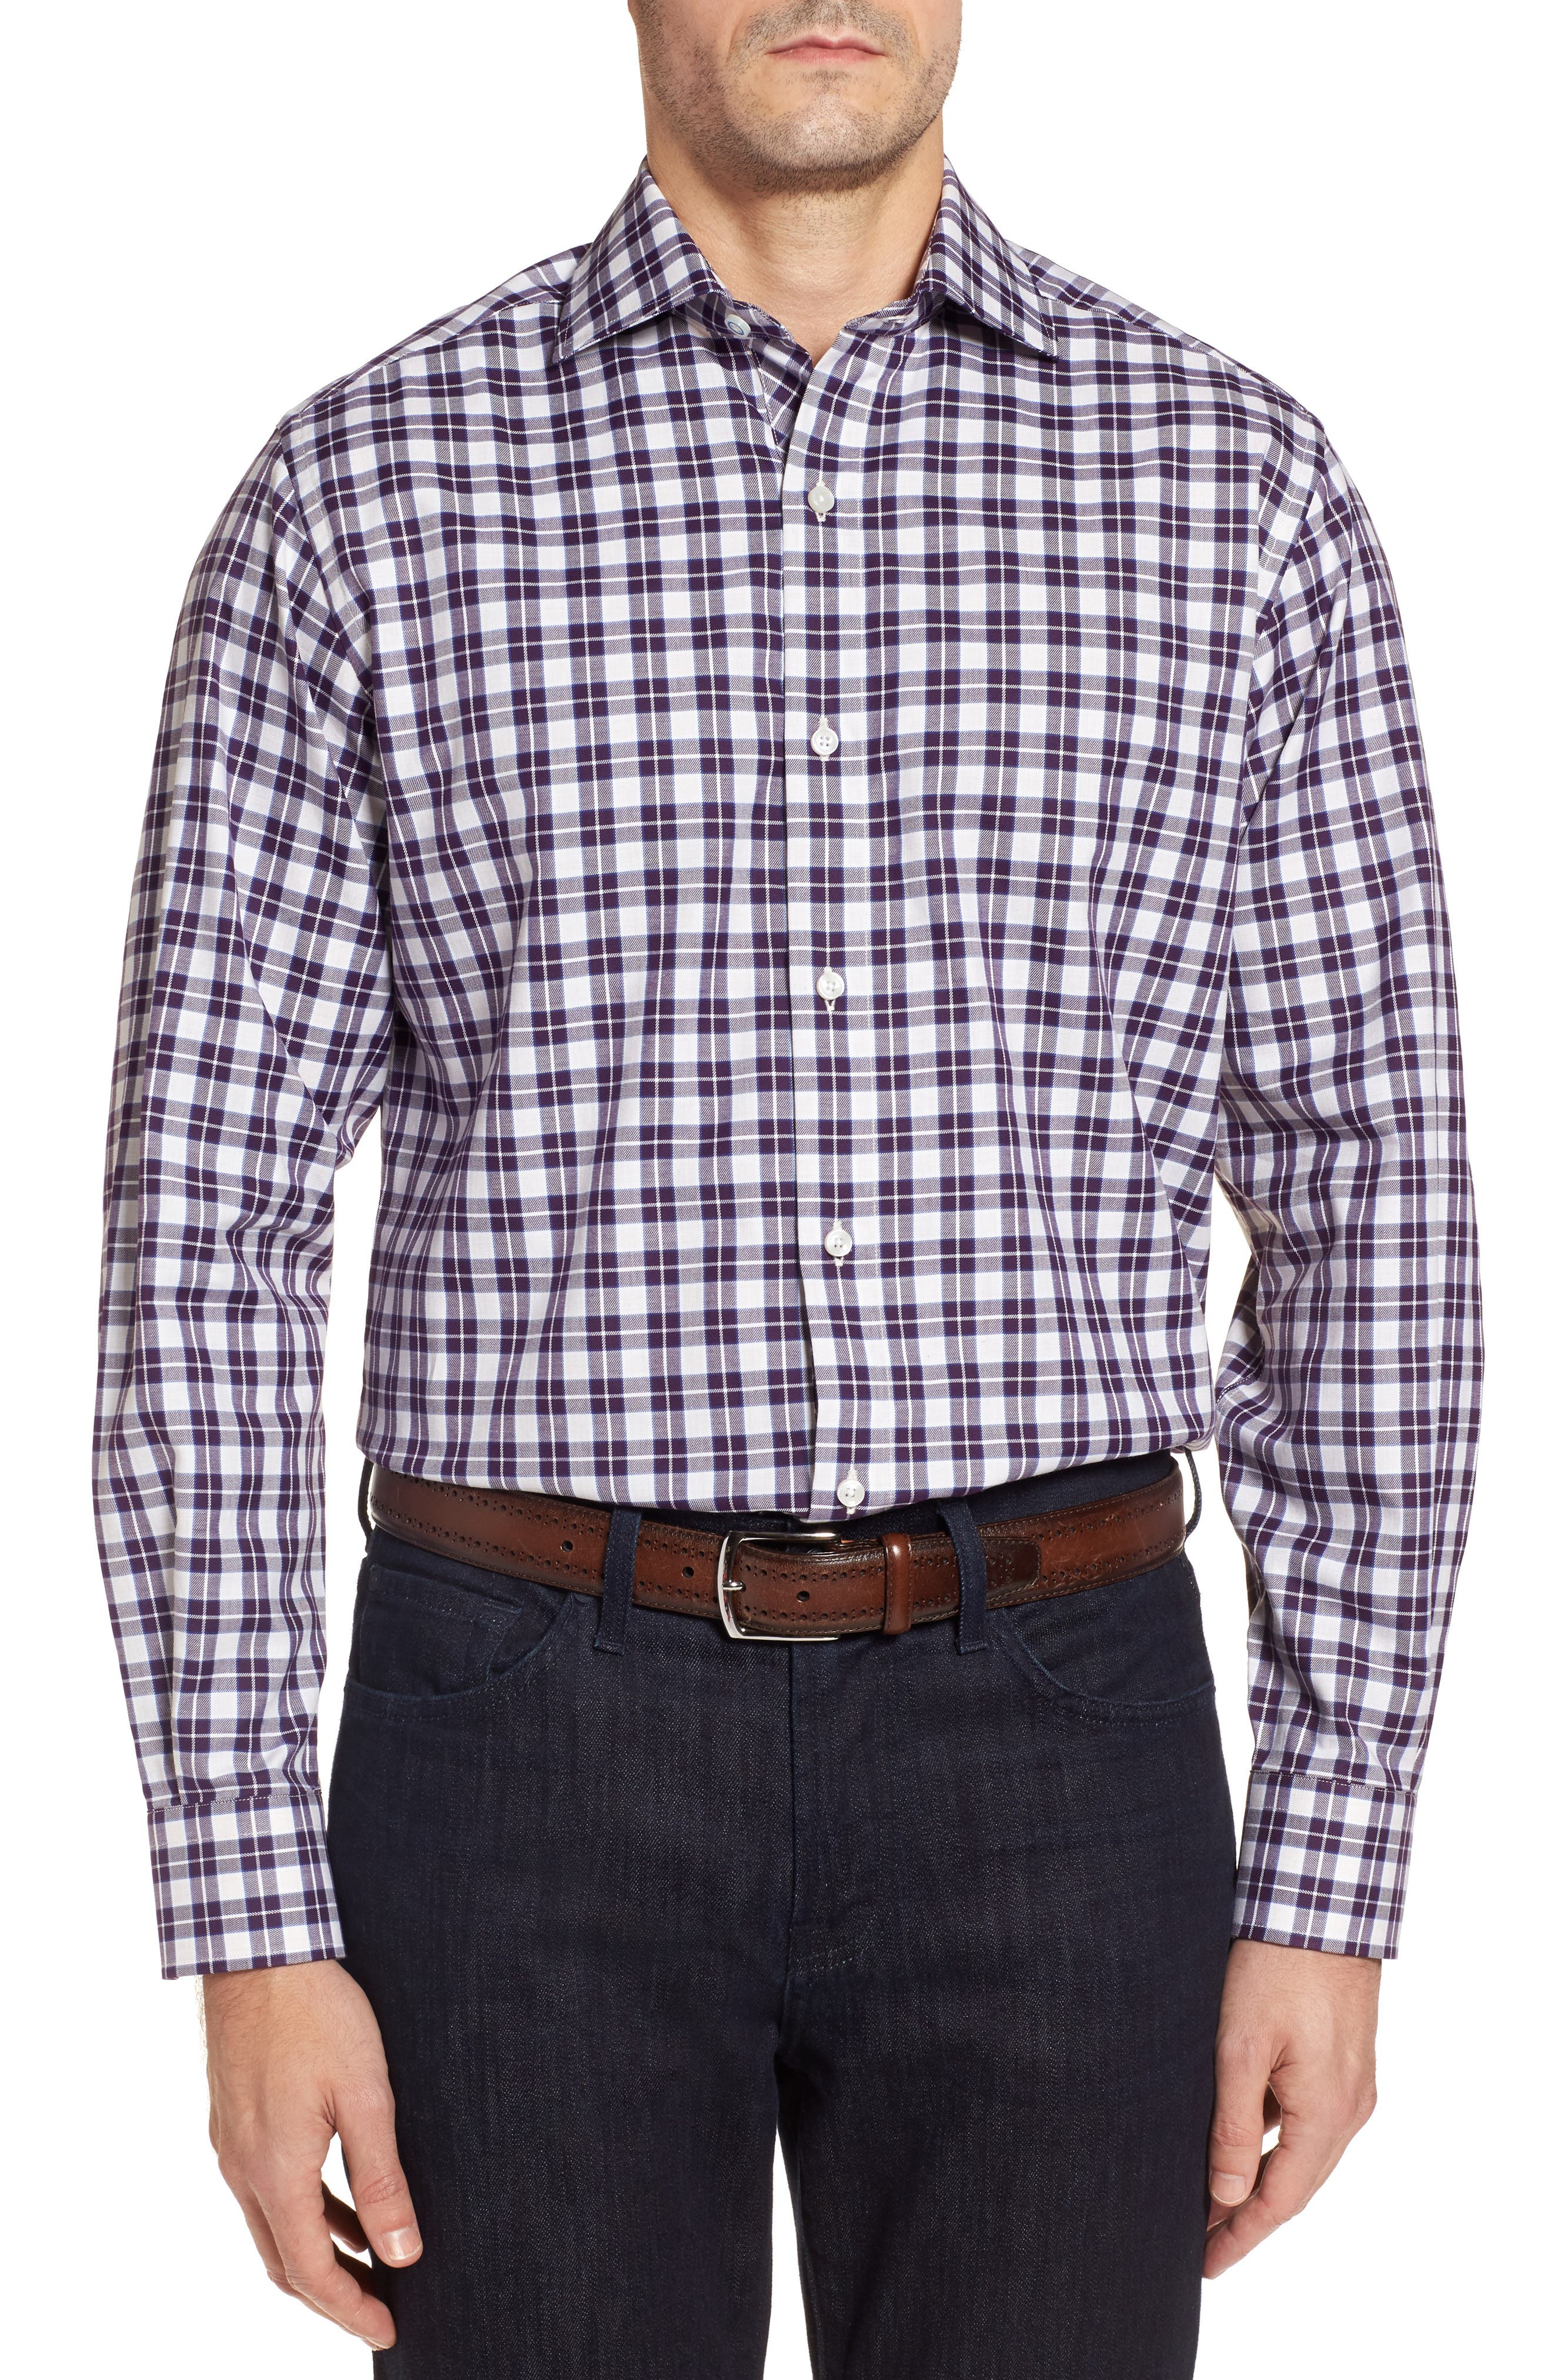 Alternate Image 1 Selected - TailorByrd Cameron Regular Fit Plaid Sport Shirt